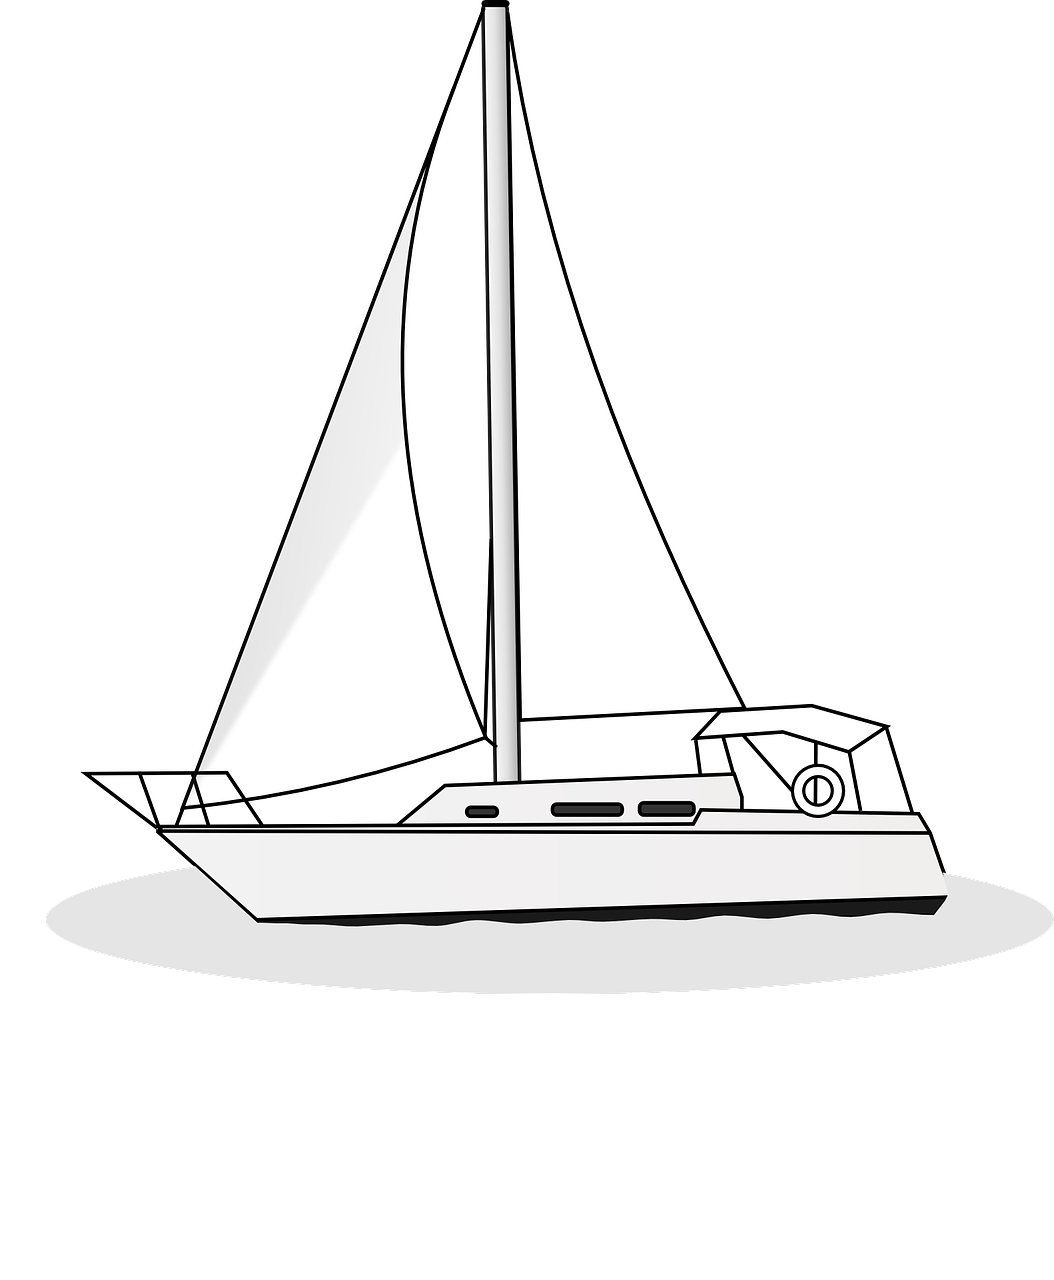 How to draw a boat. stencils 6